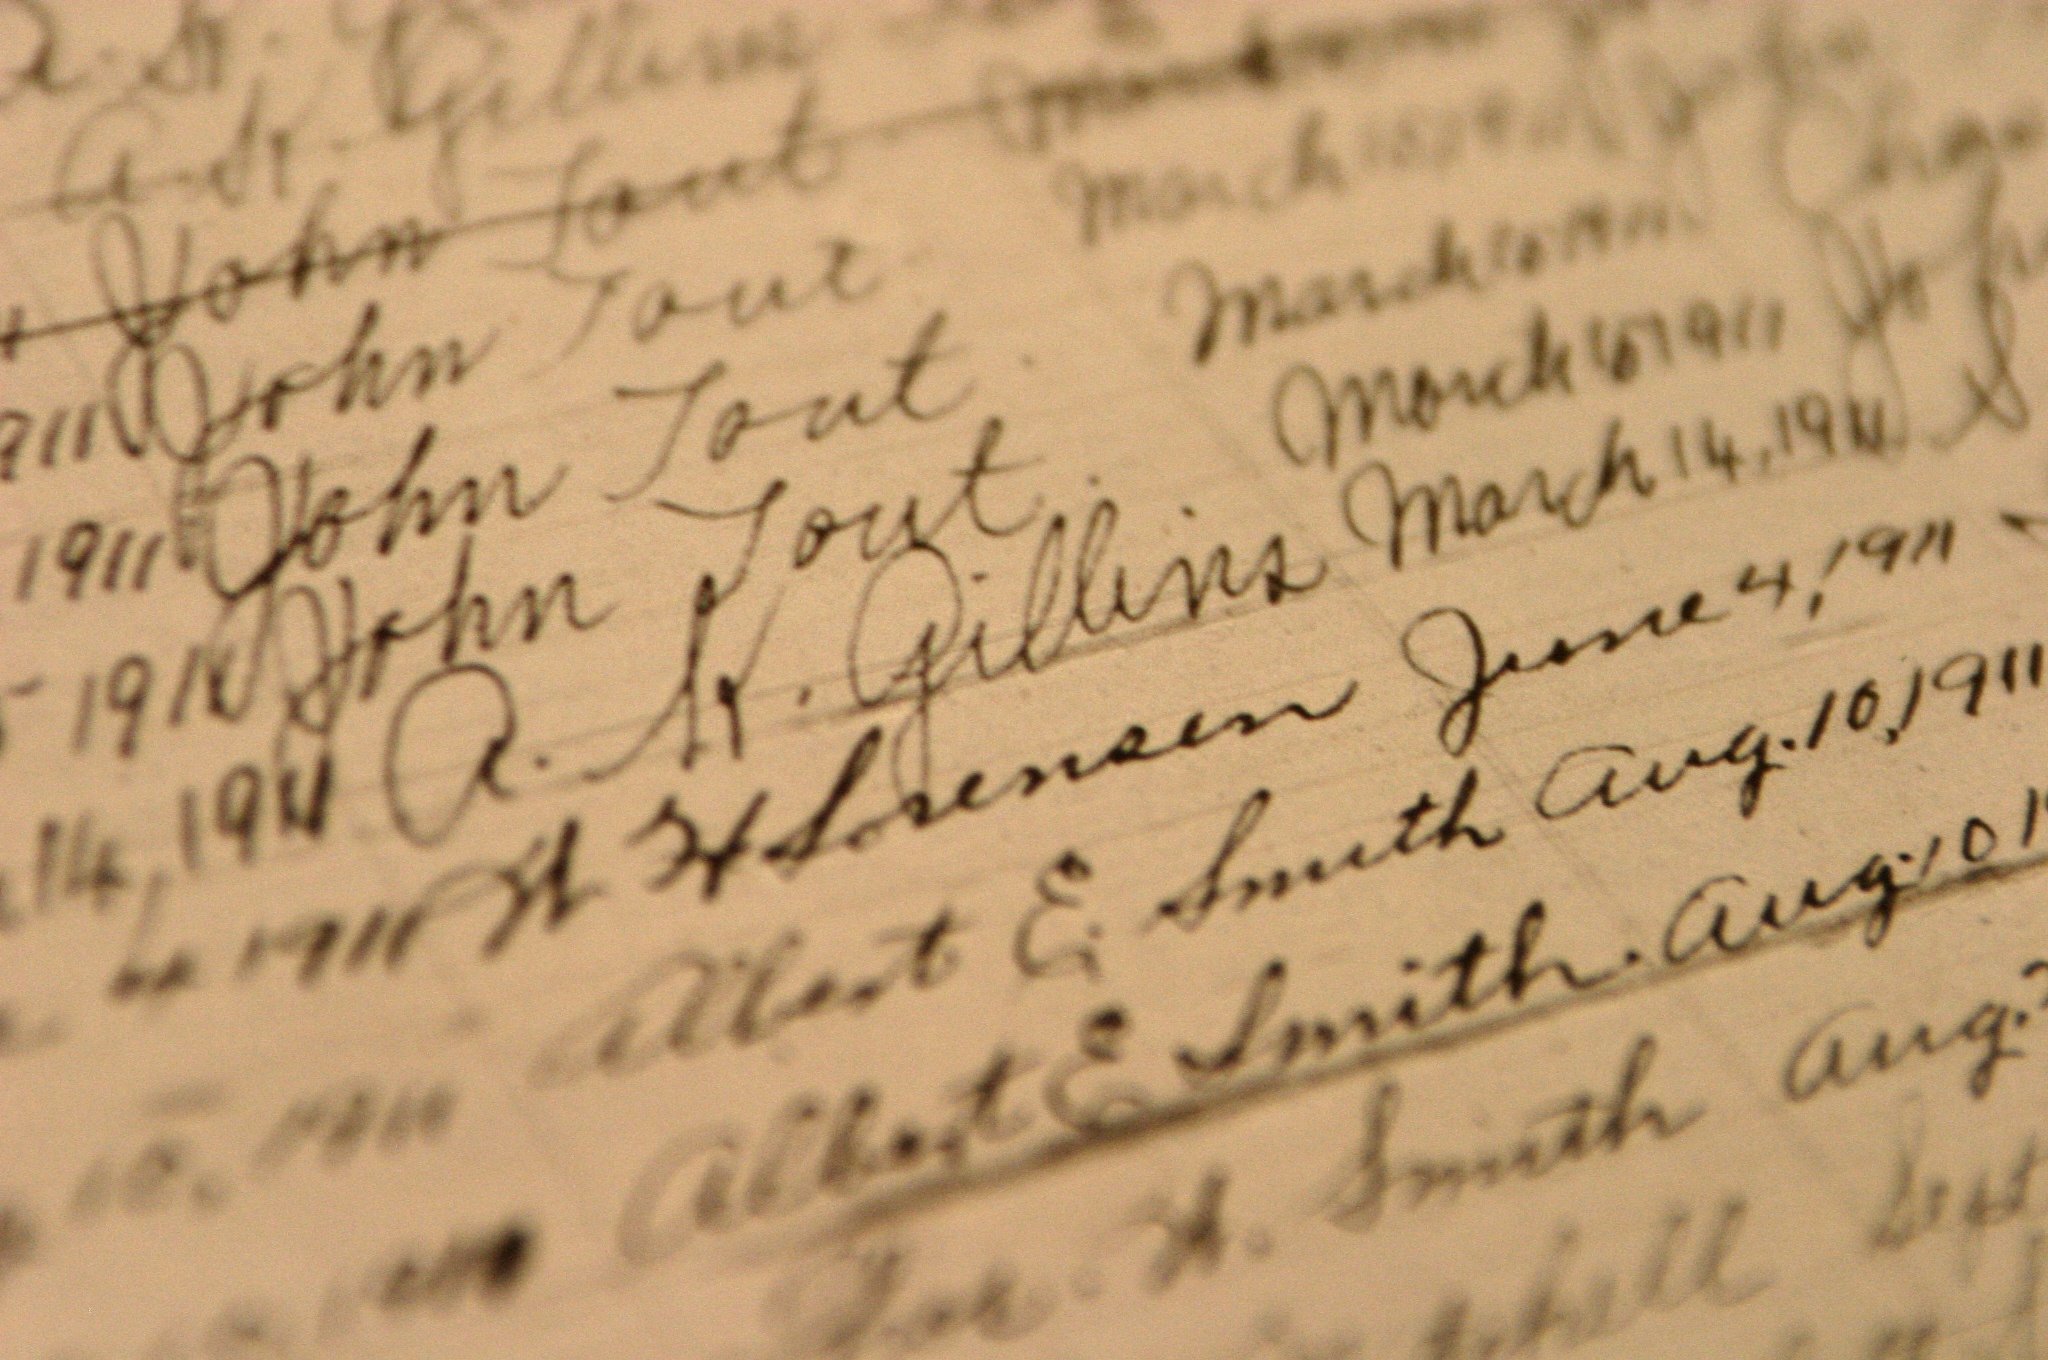 Website for genealogy research pulls together all things DNA related